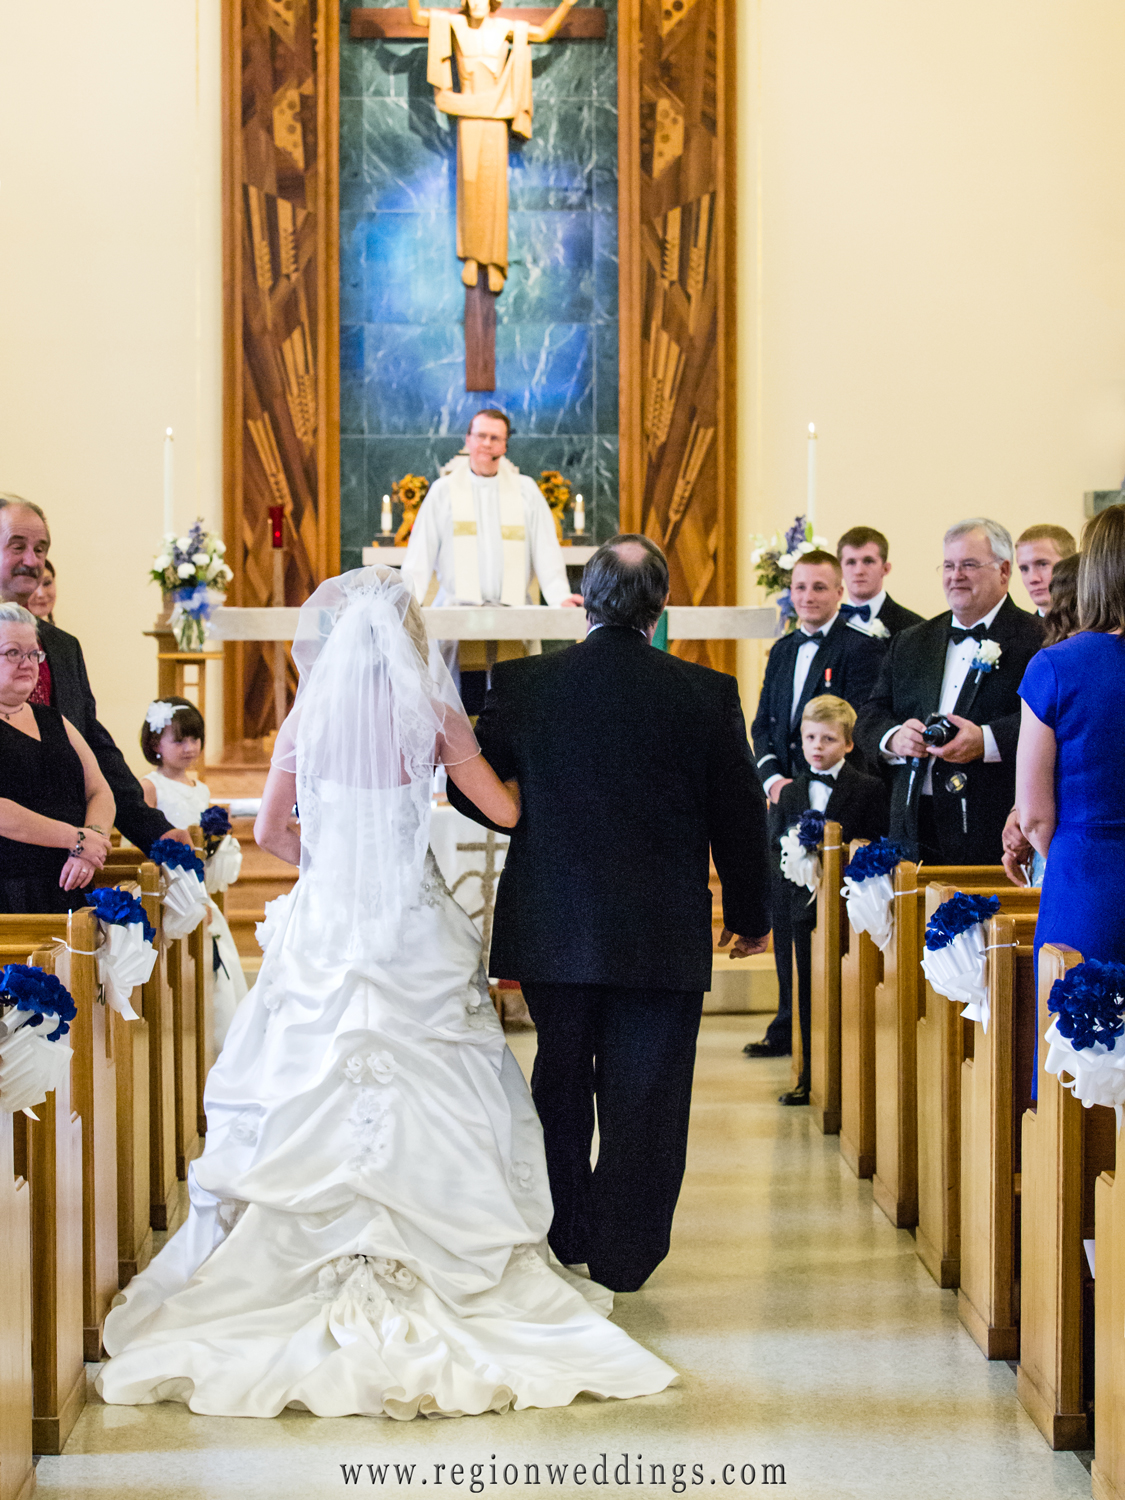 The bride's father walks her down the aisle at St. Mary Church in Griffith.